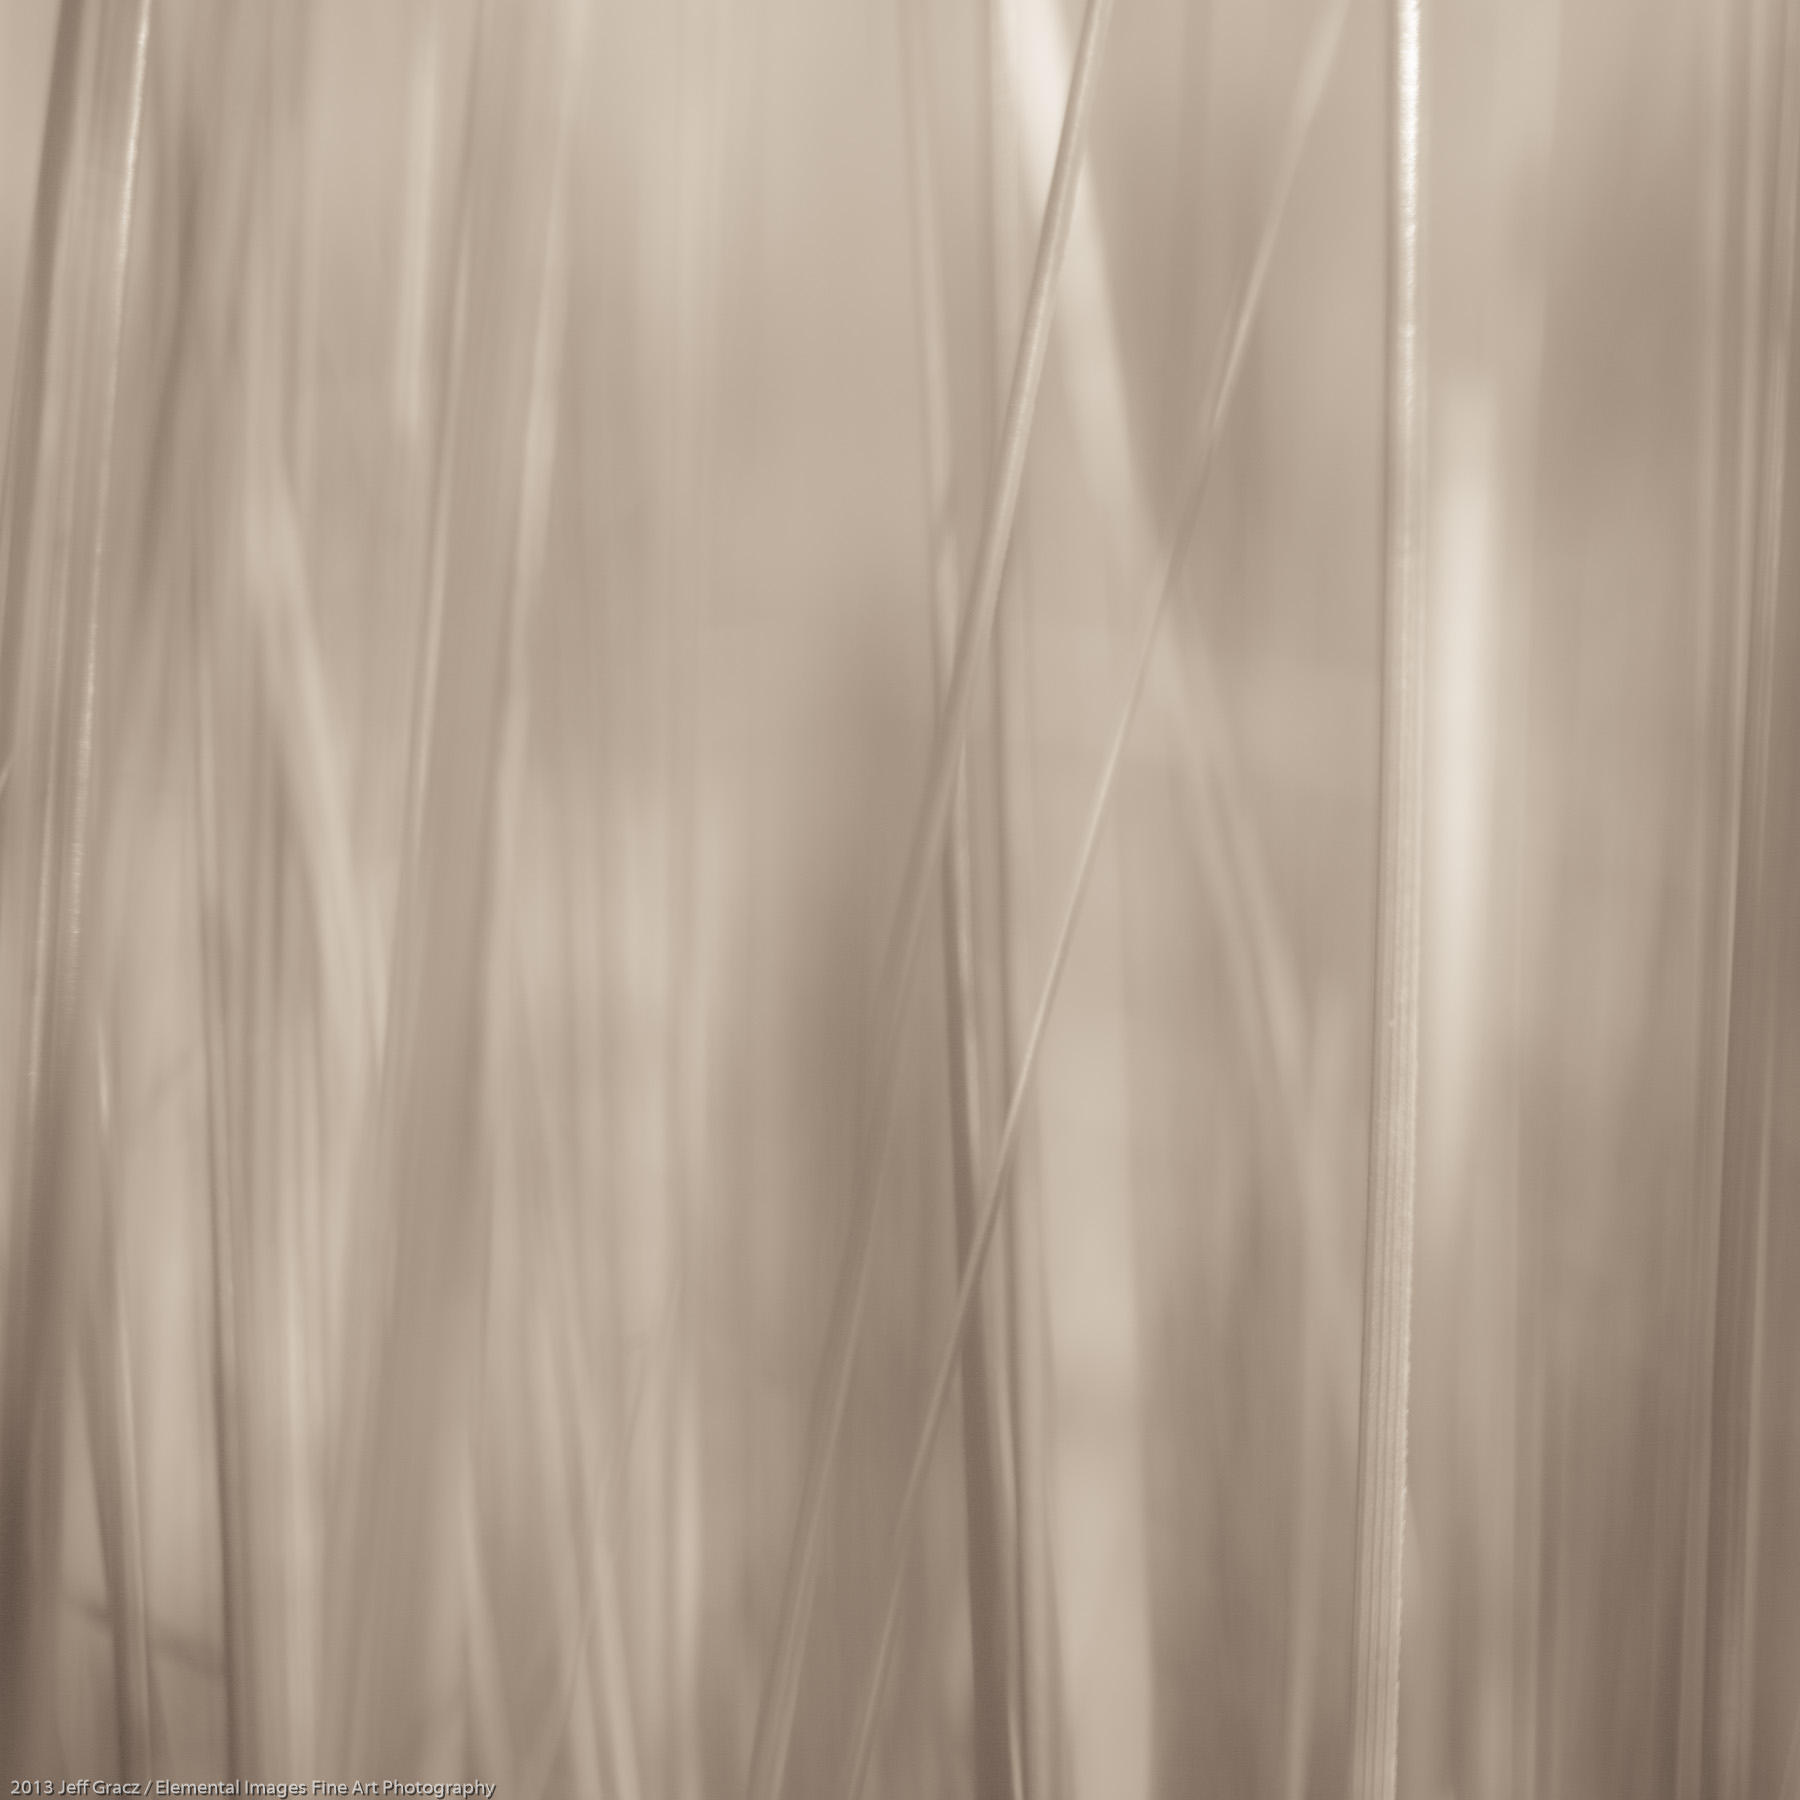 Grasses LIV | Portland | OR | USA - © 2013 Jeff Gracz / Elemental Images Fine Art Photography - All Rights Reserved Worldwide